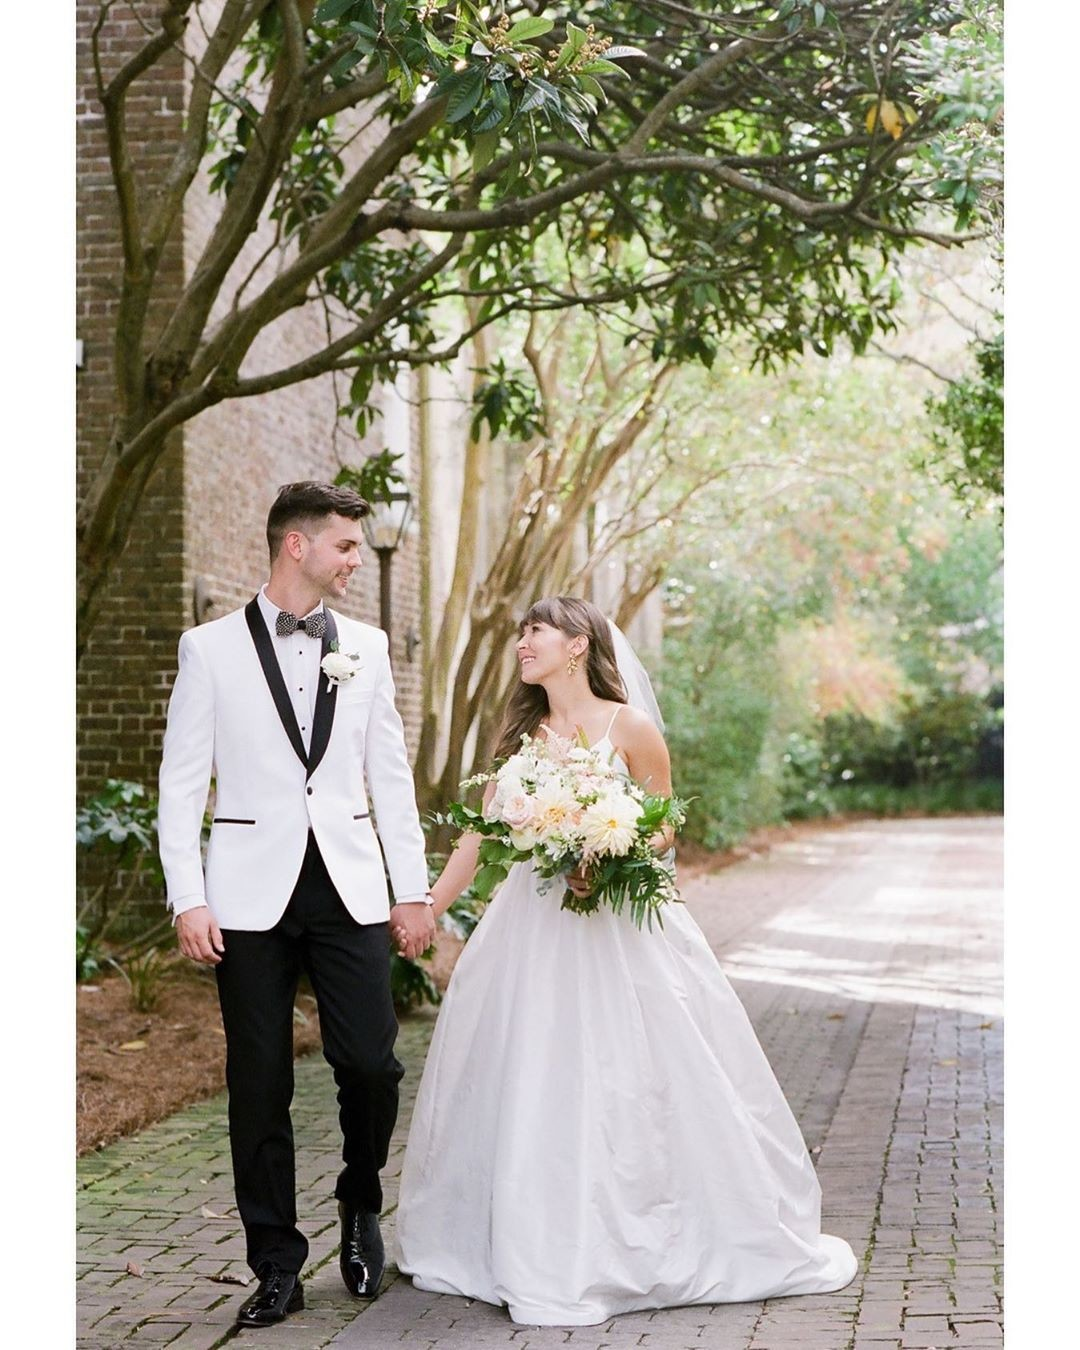 Another gallery delivered 🥂 Kayla and Dillon are not only a wonderful couple, but they are also one of the most stylish and design